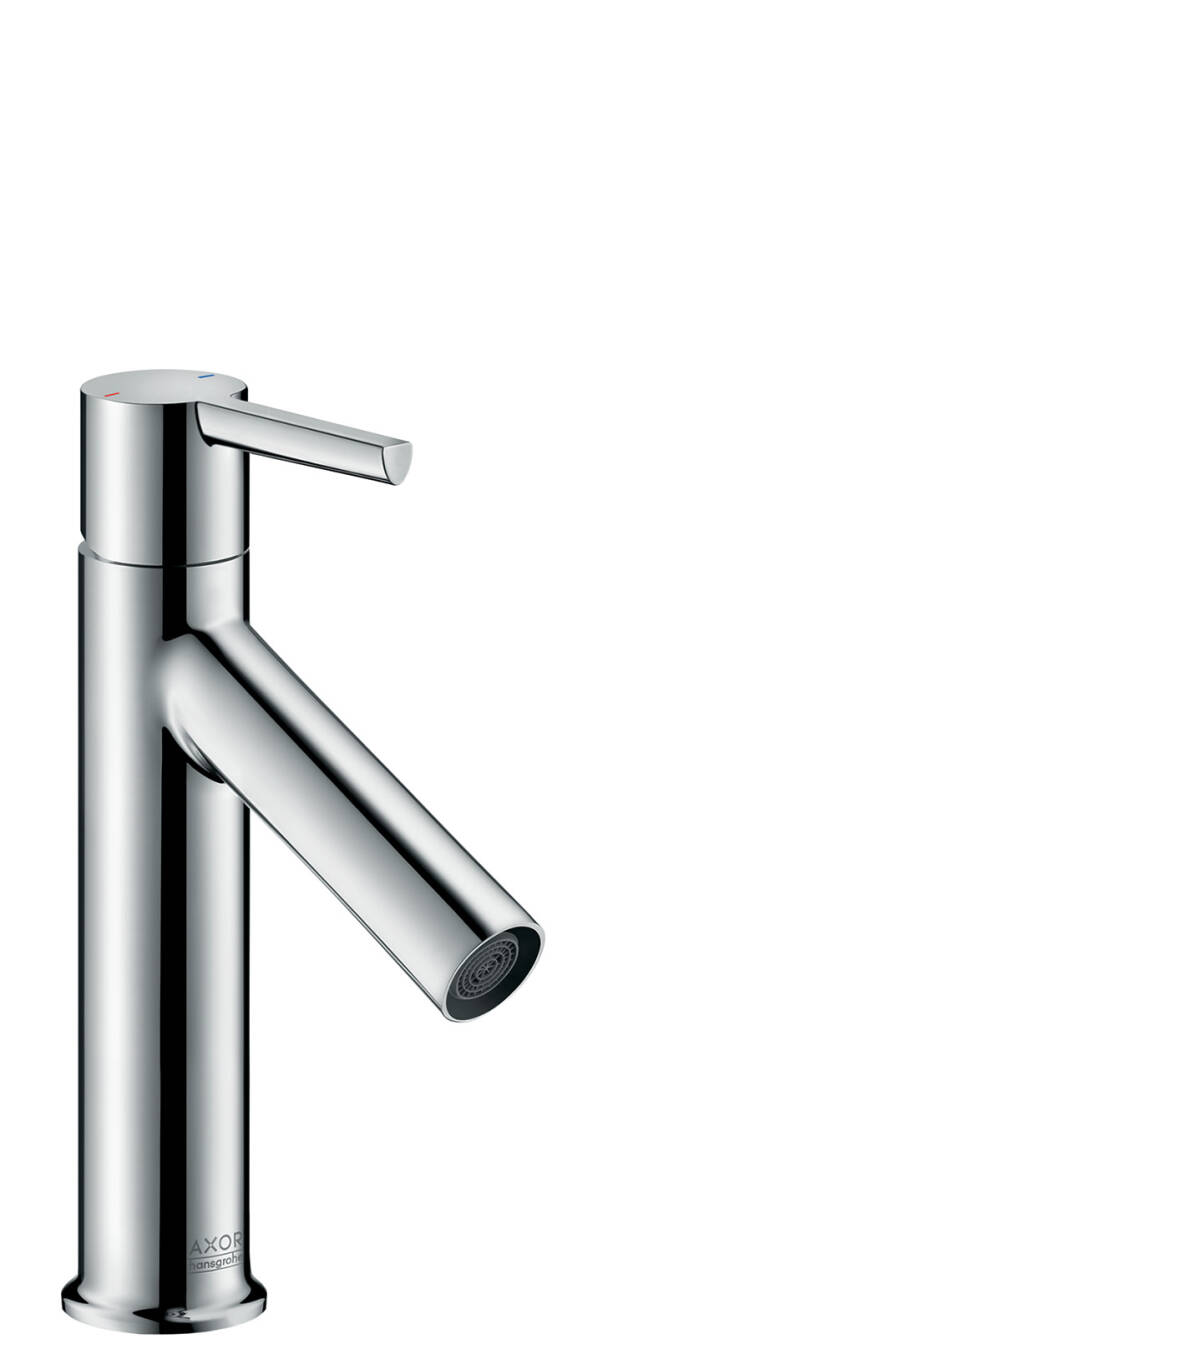 Single lever basin mixer 100 with lever handle and pop-up waste set, Chrome, 10001000